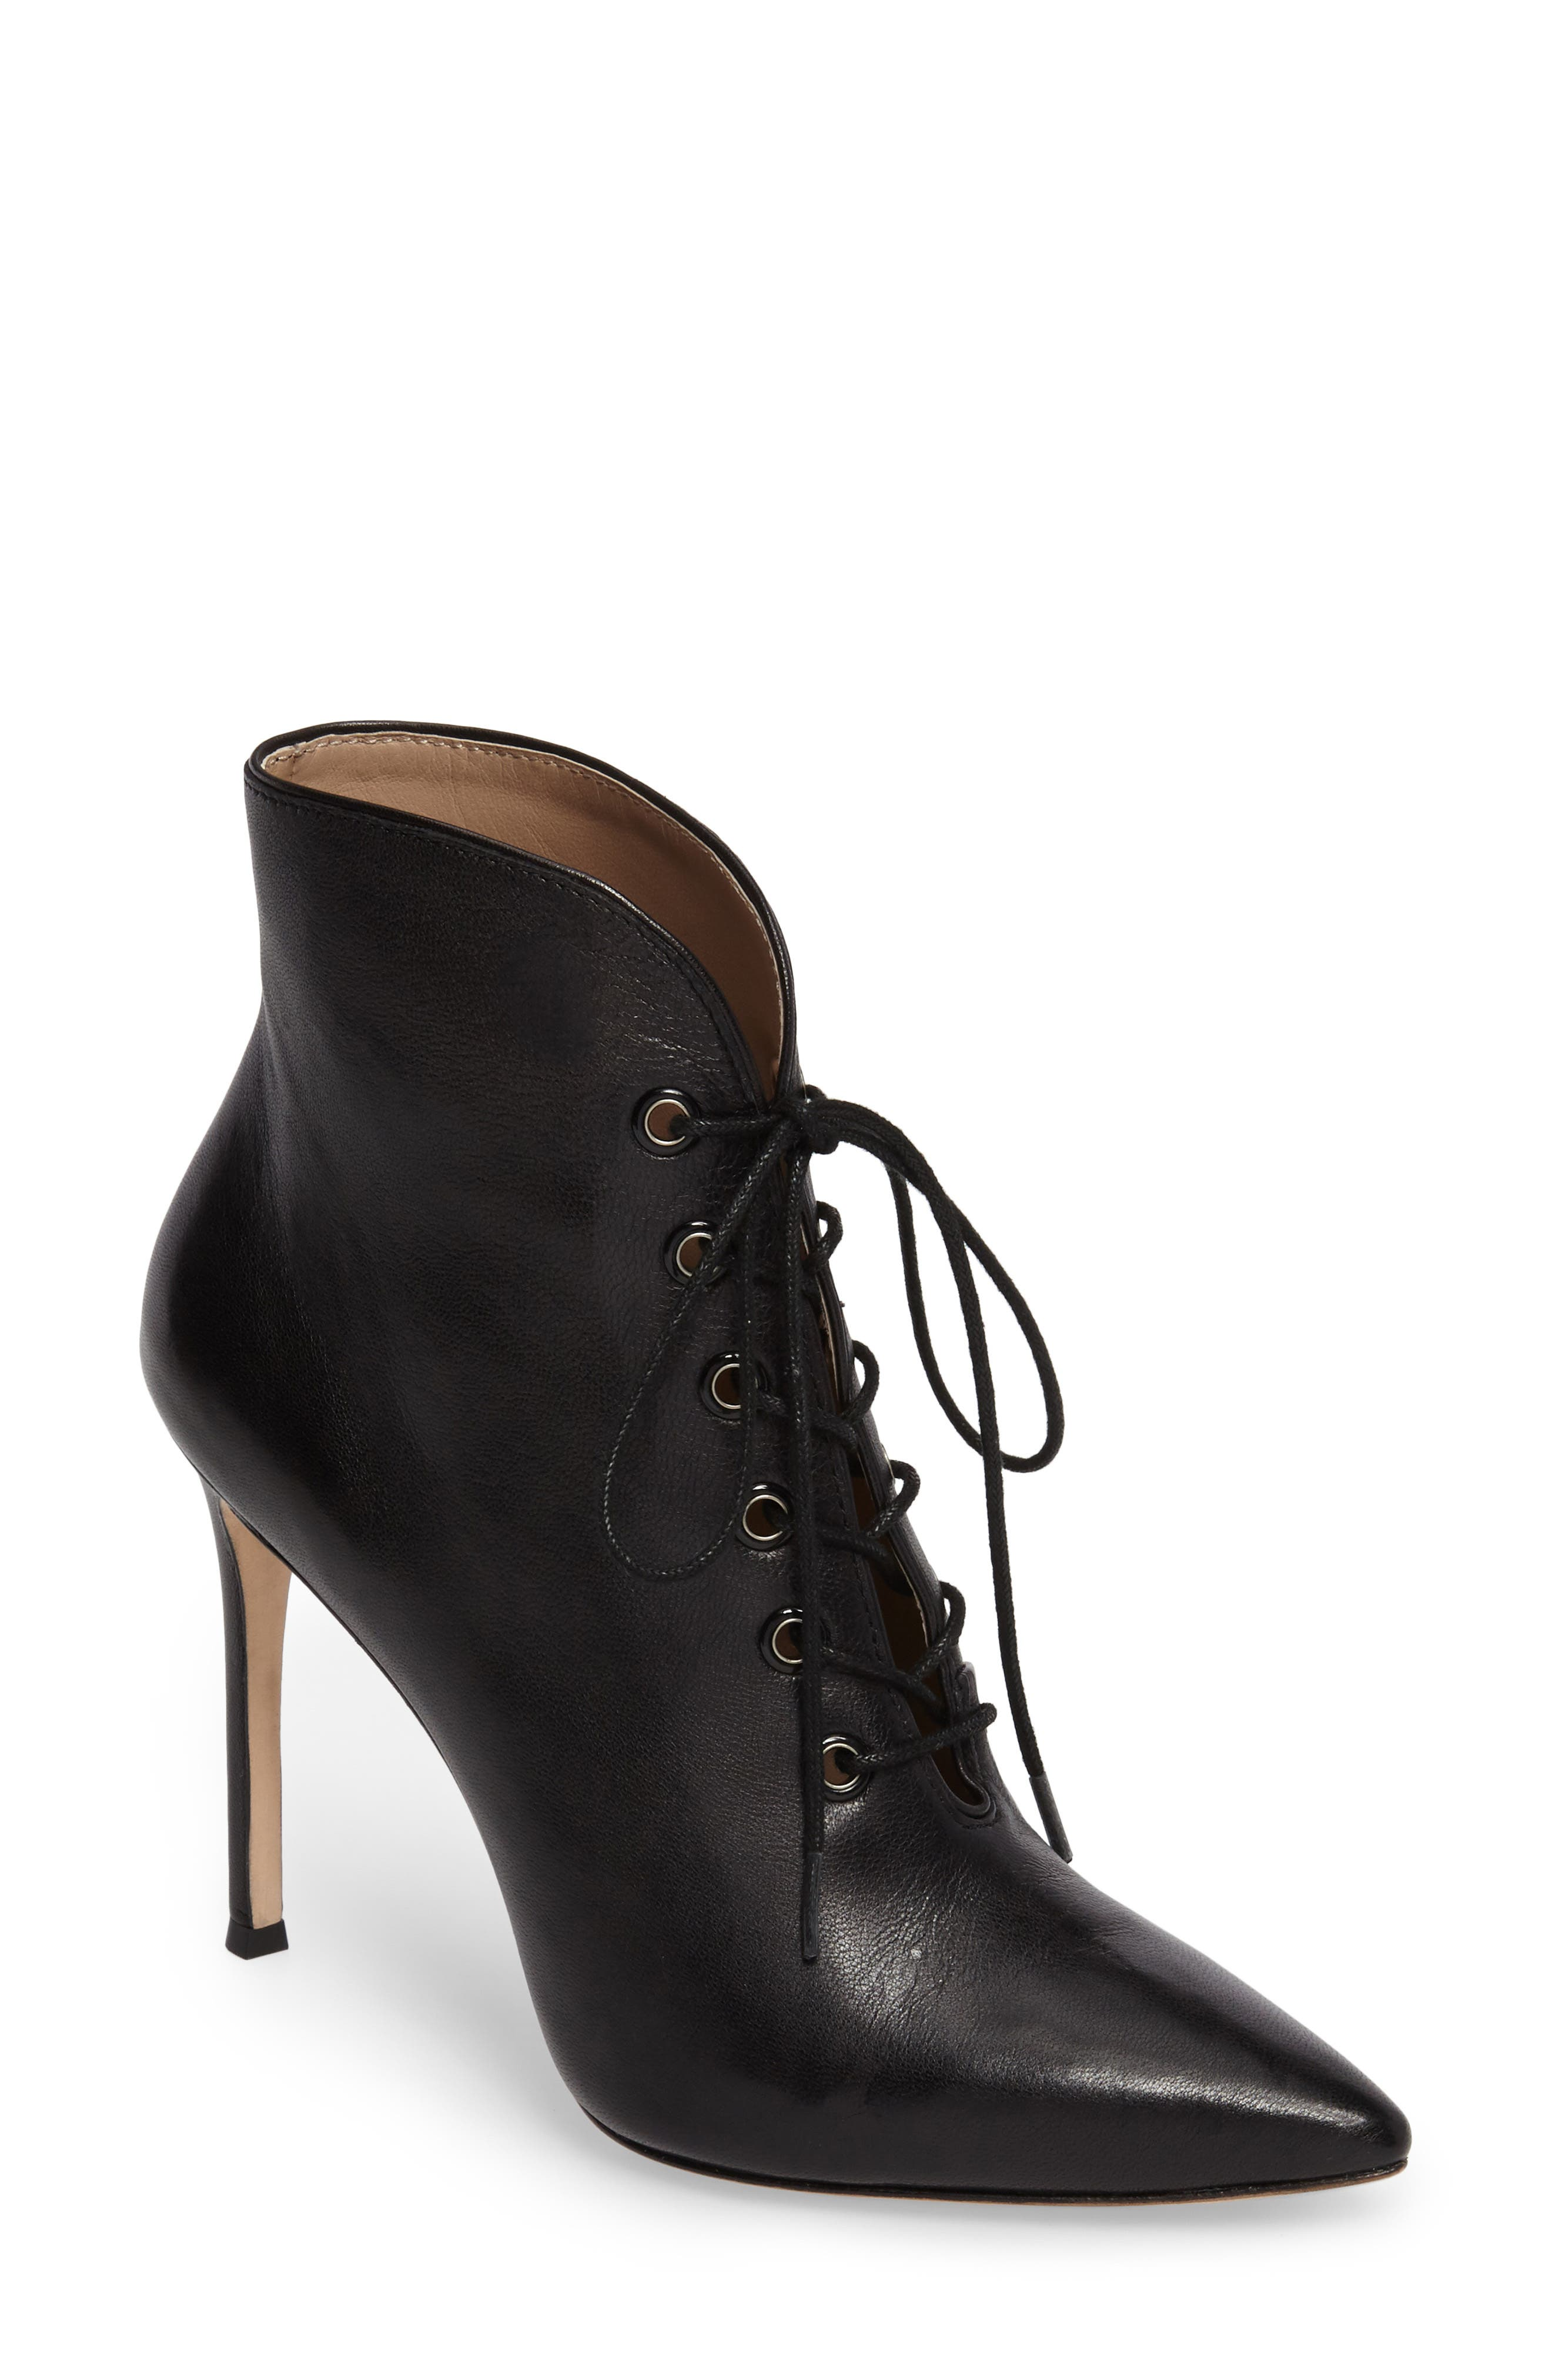 Cari Pointy Toe Bootie,                             Main thumbnail 1, color,                             001